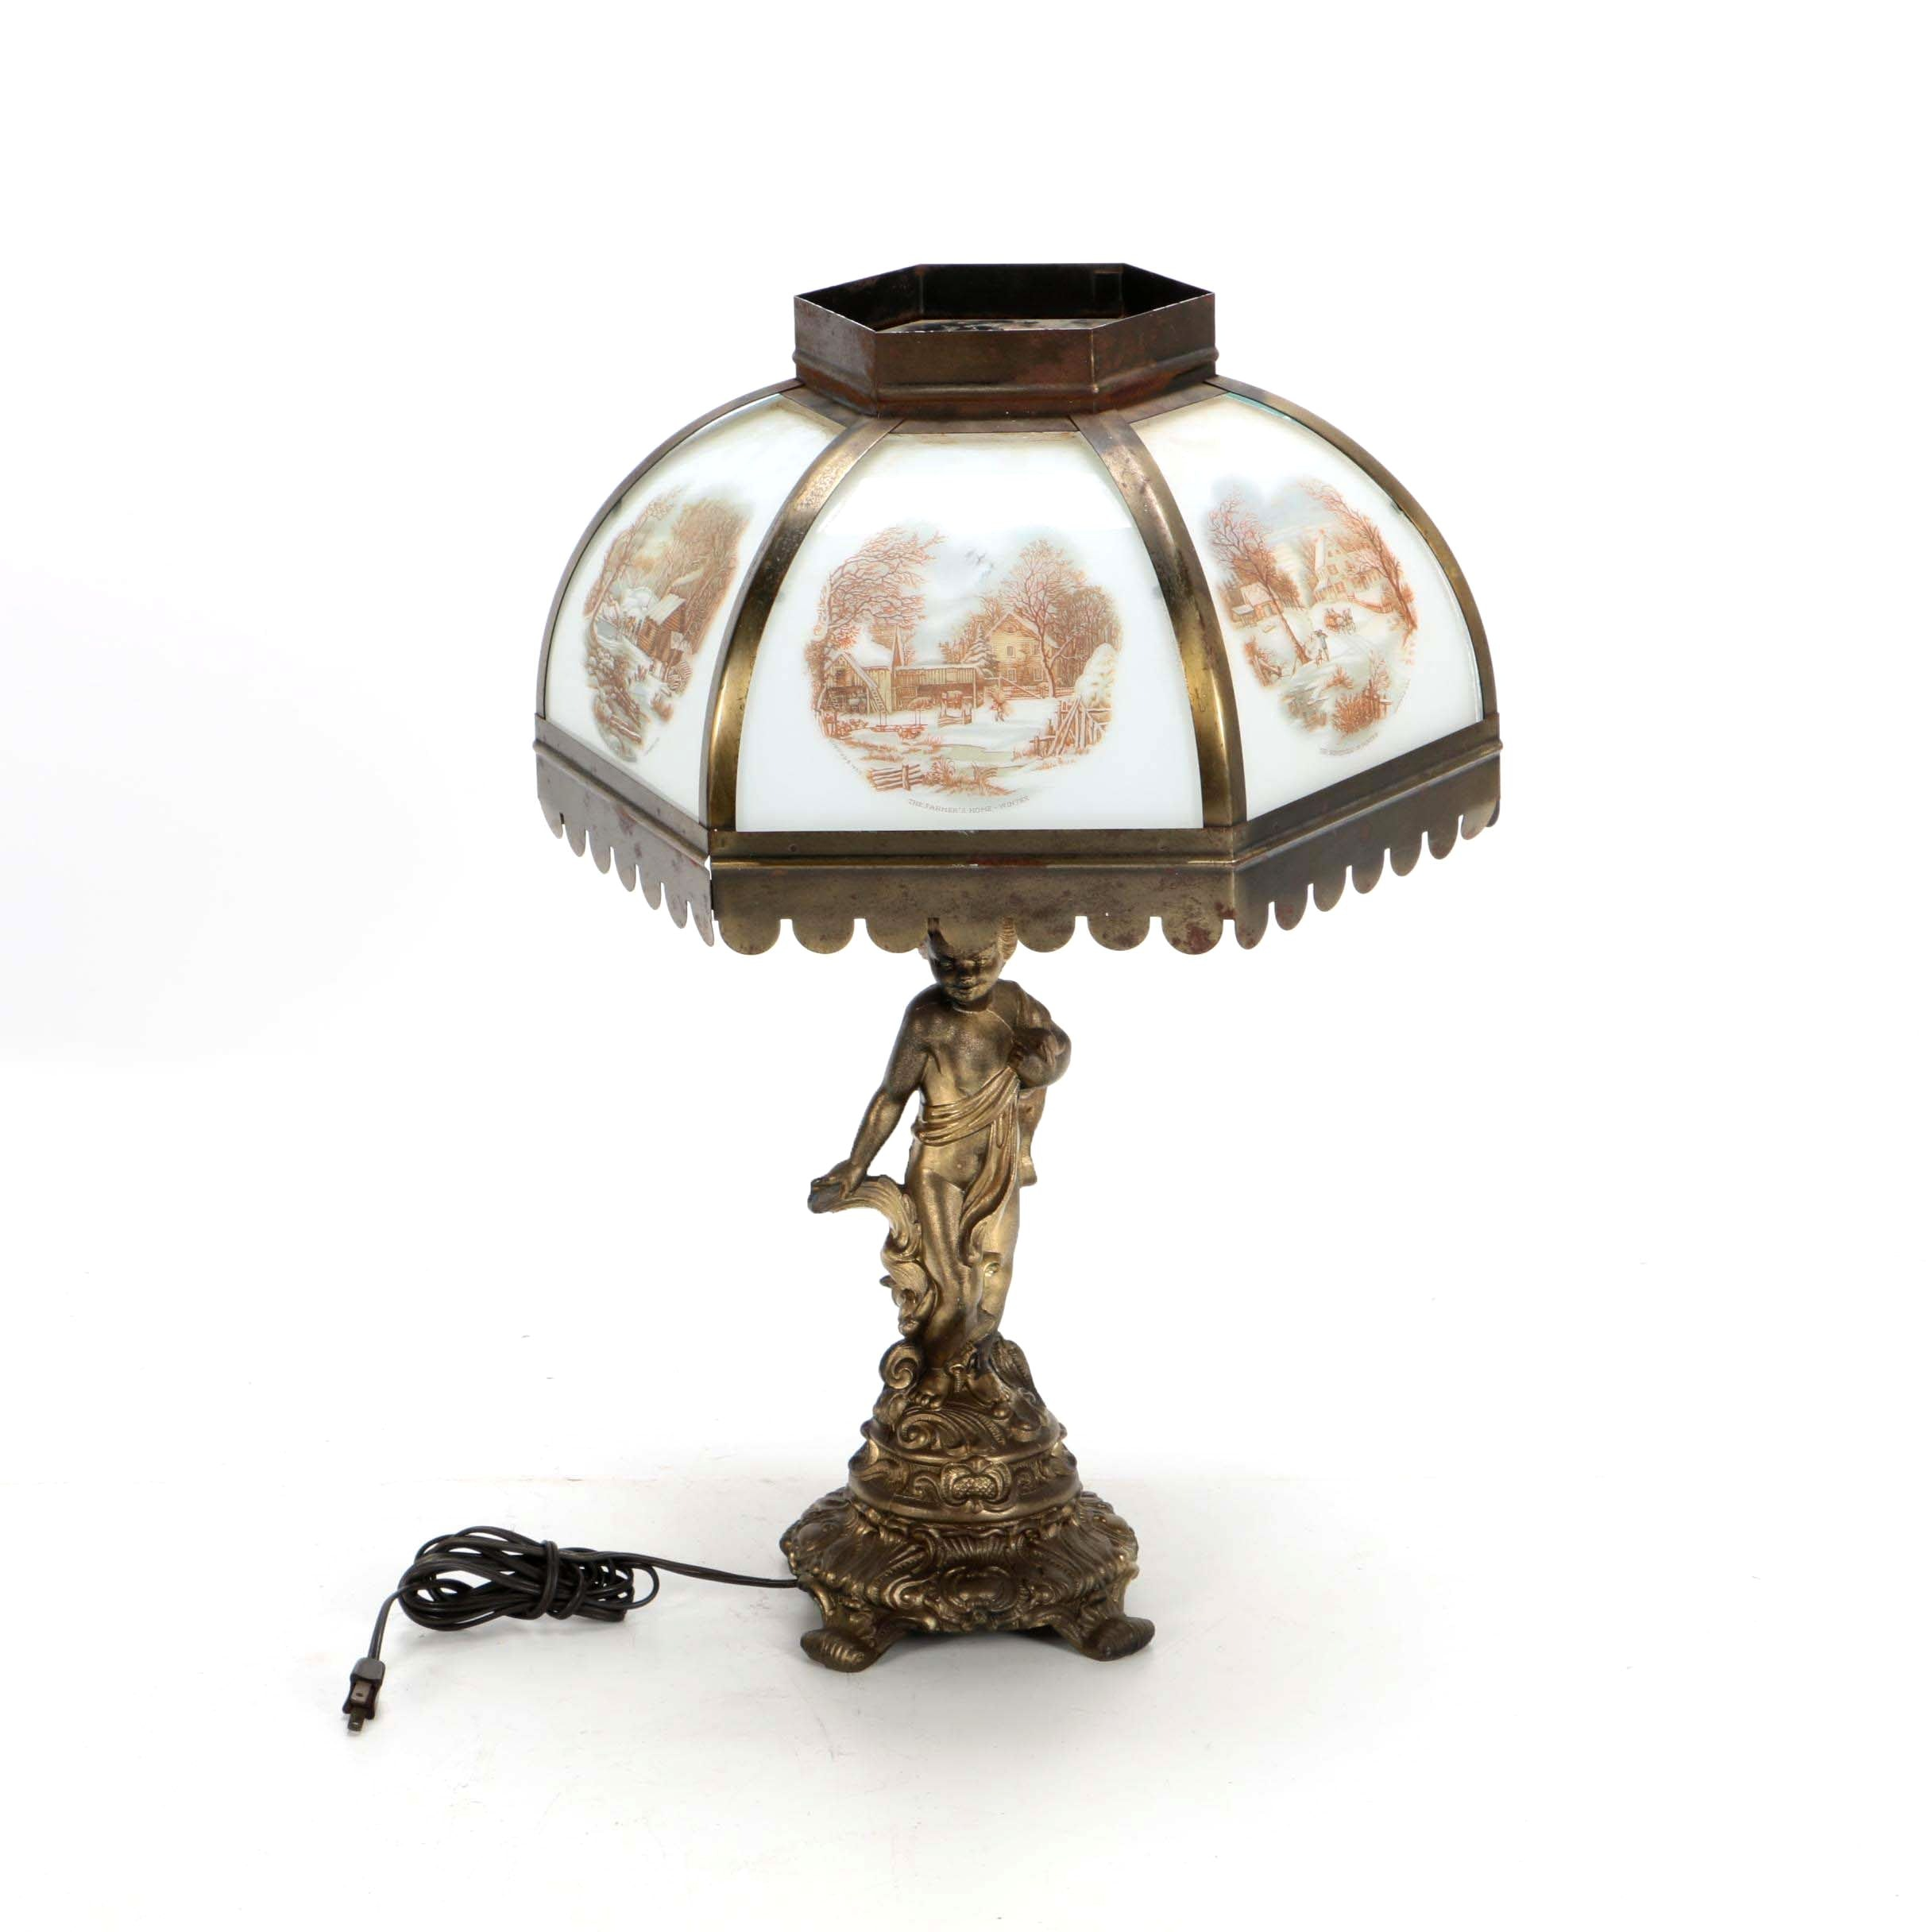 Figural Cherub Table Lamp With Currier and Ives Paneled Glass Lampshade